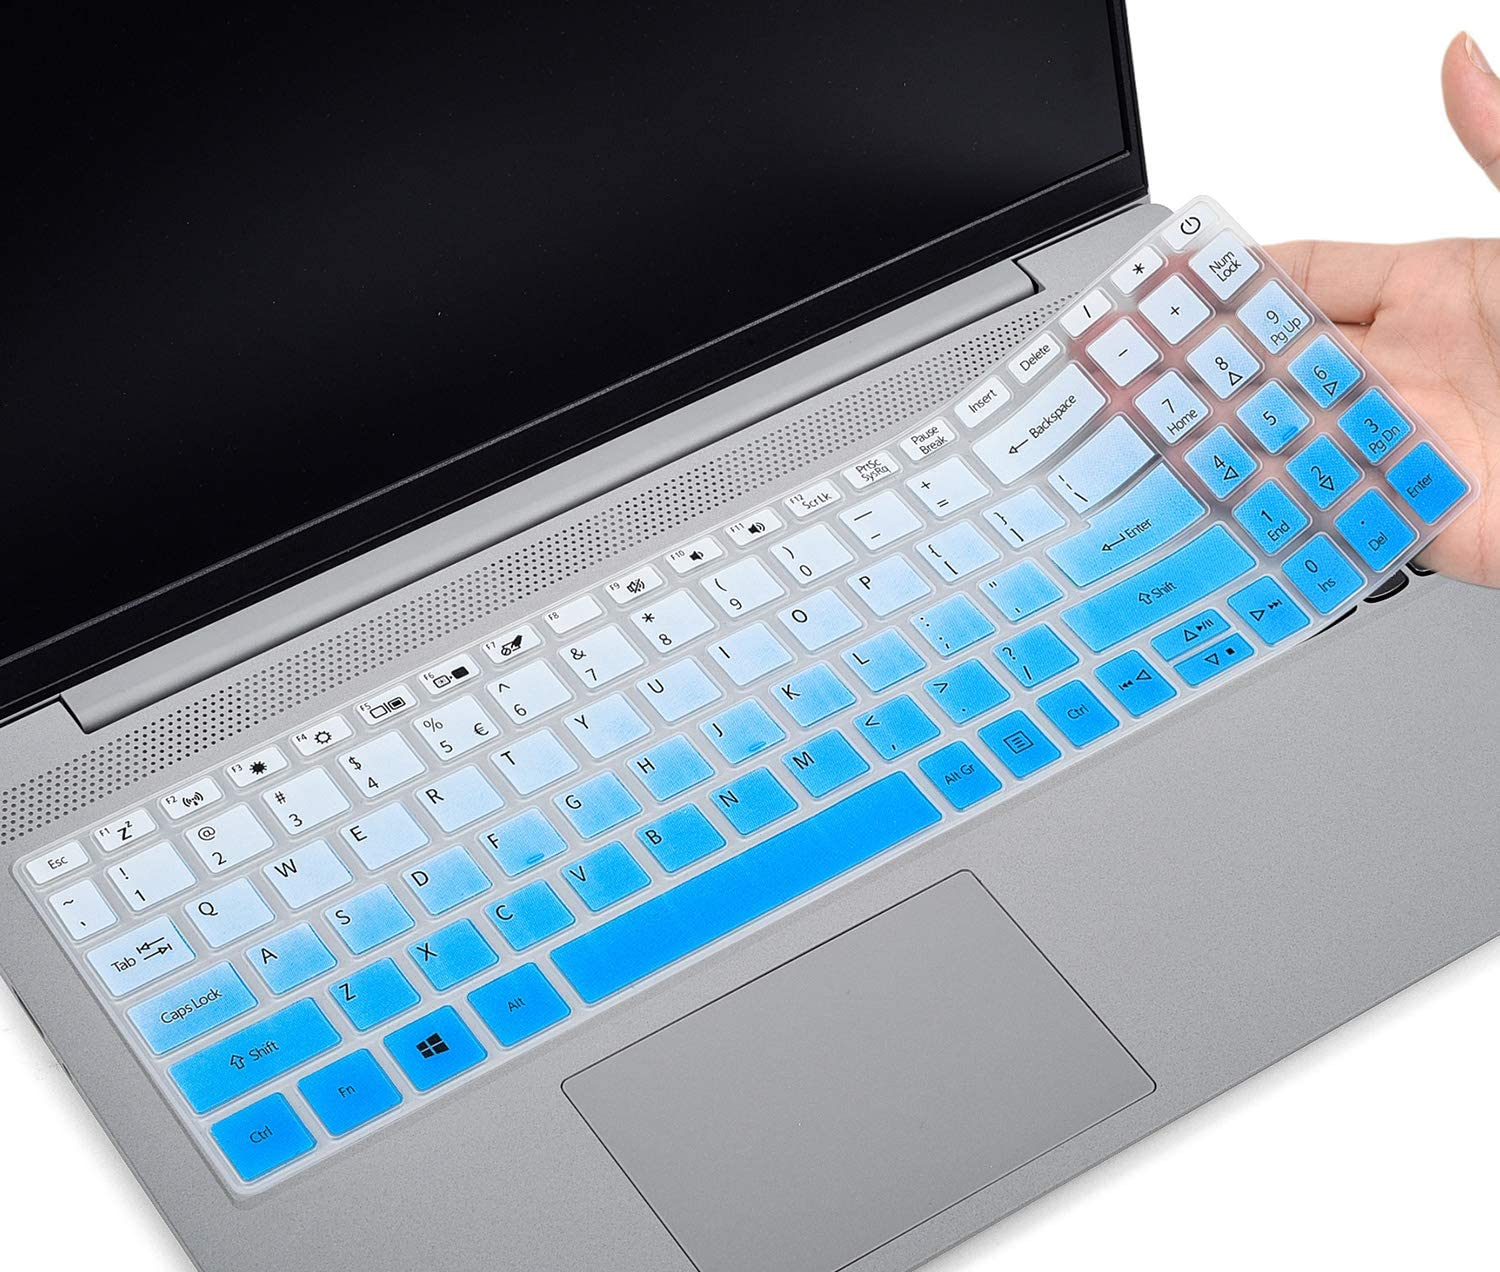 CaseBuy Keyboard Cover for Acer Aspire 5 Slim Laptop 15.6 inch A515-43 A515-54 A515-54G Series, Acer Aspire 5 Slim Laptop Cover, Acer Aspire 5 Accessories,Ombre Blue